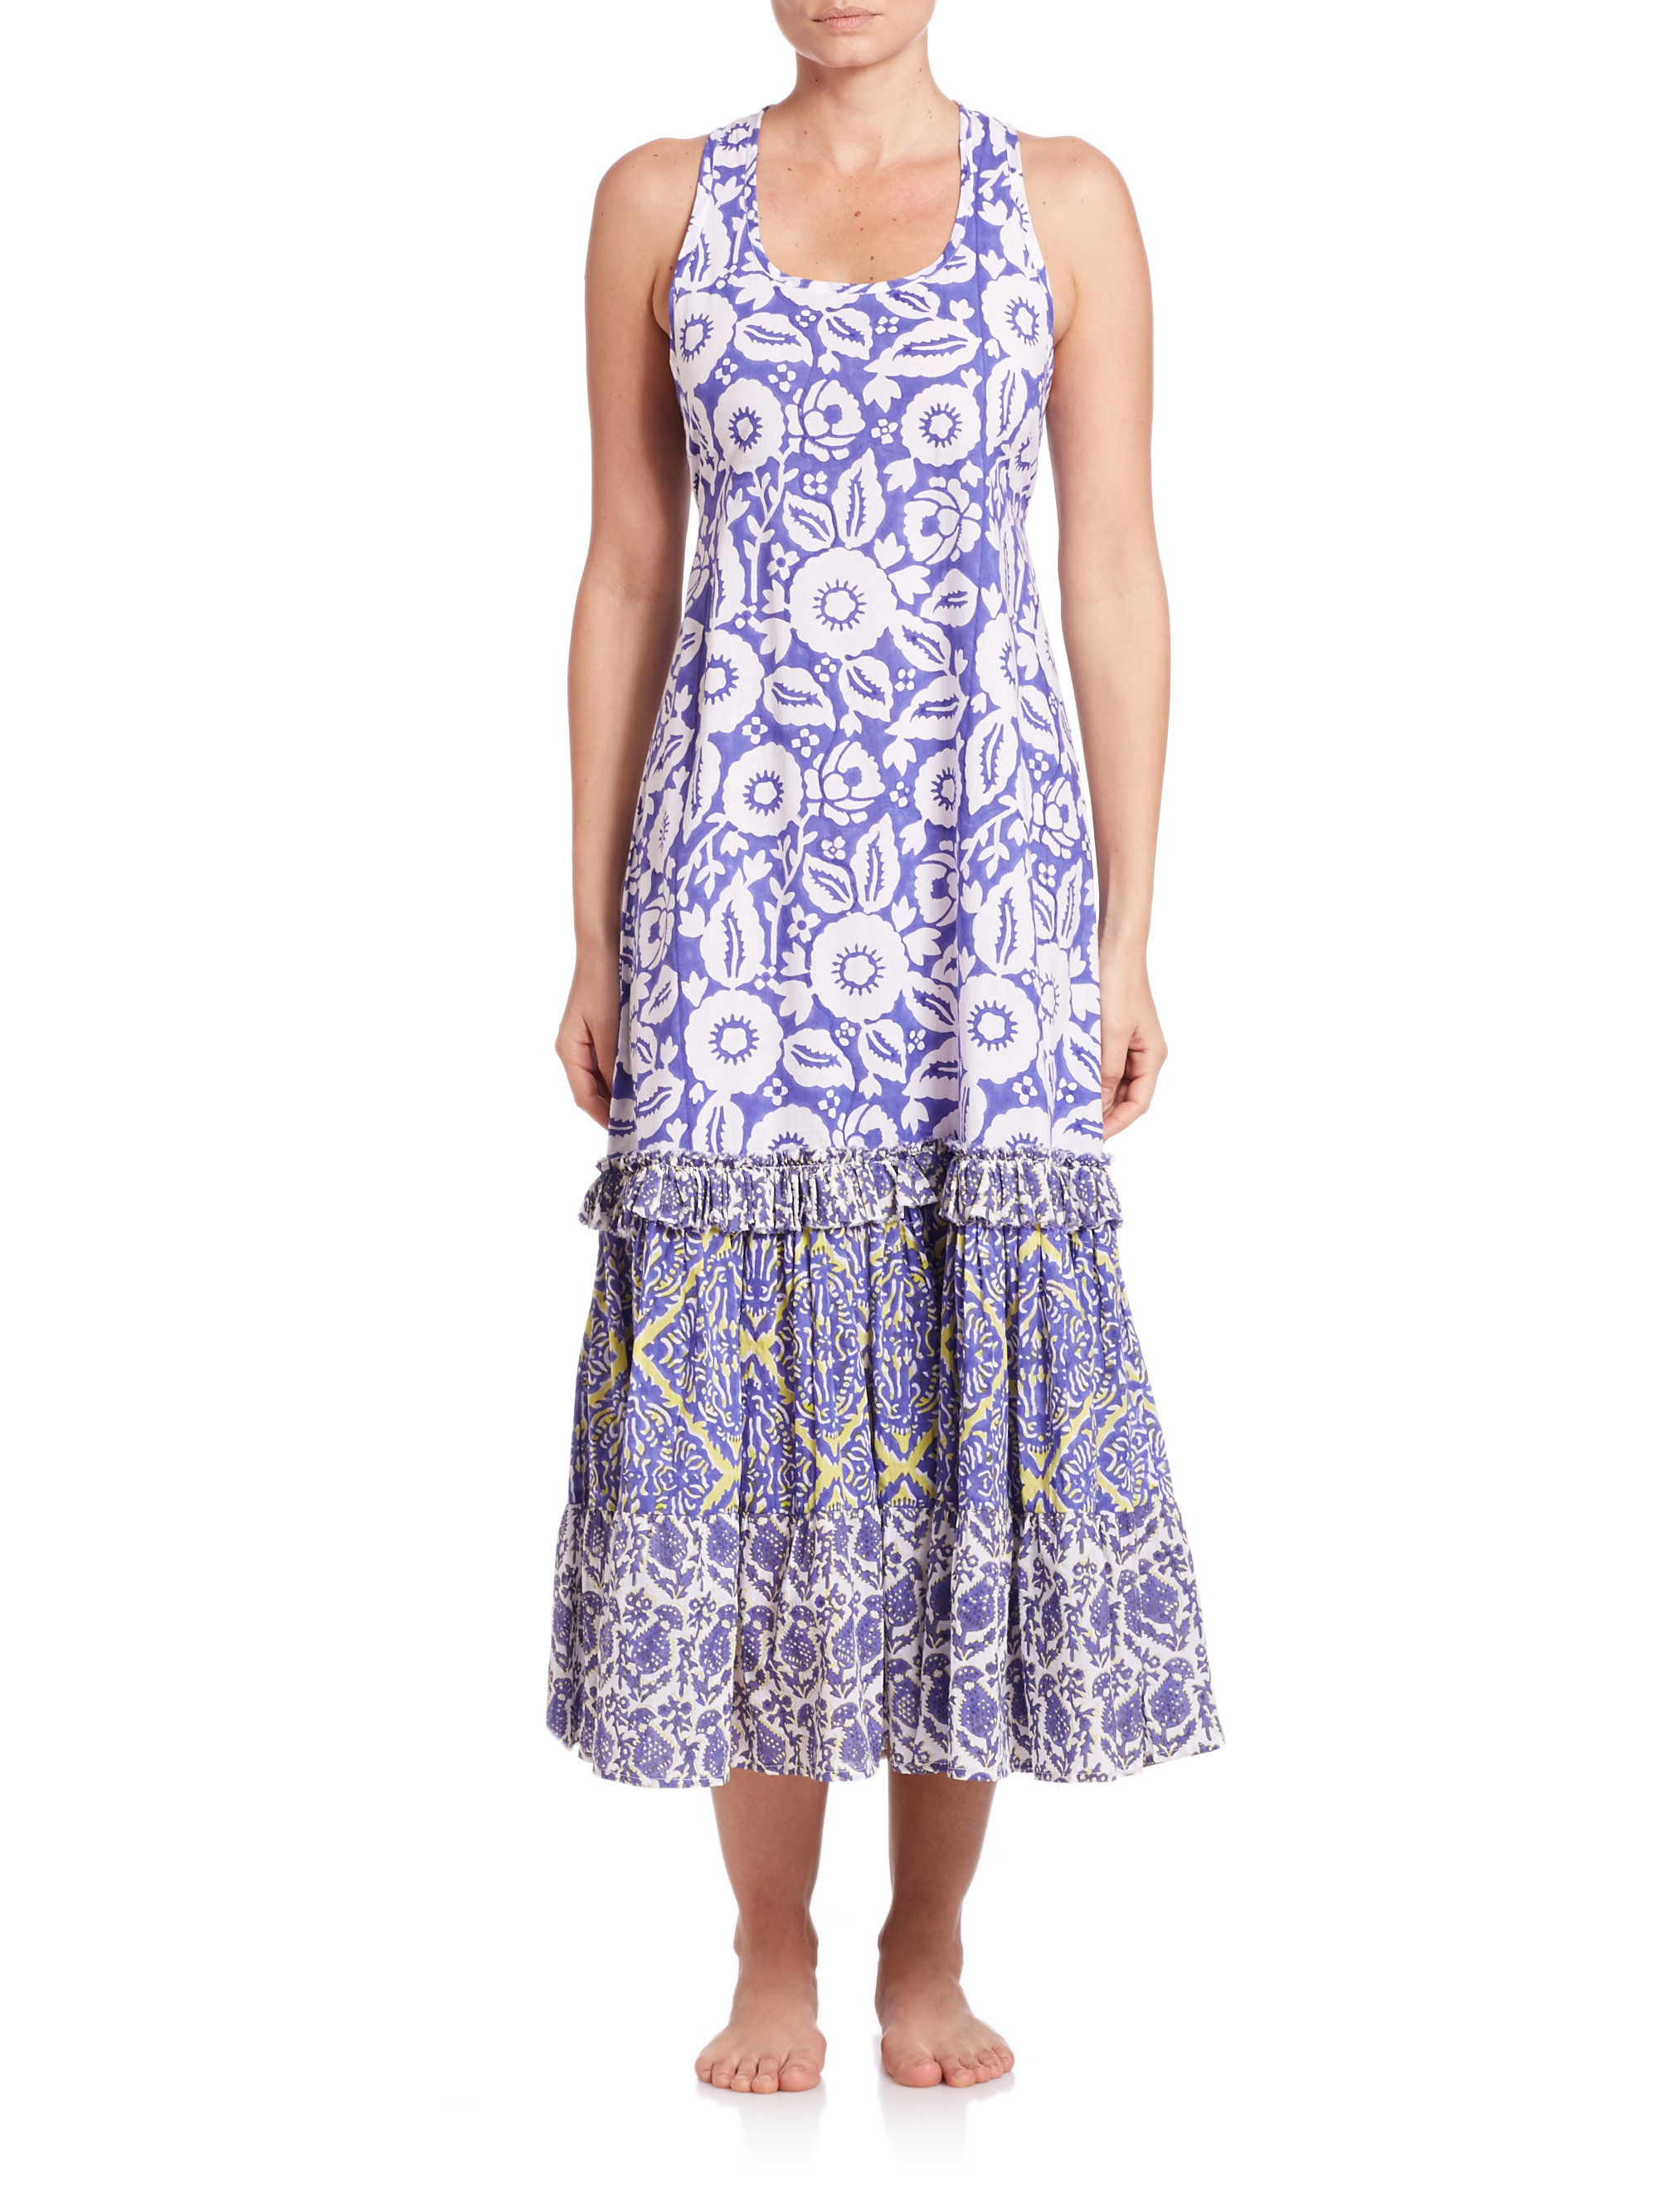 66dbad329ff89 Roberta Roller Rabbit Letitia Long Cotton Beach Dress in Blue - Lyst